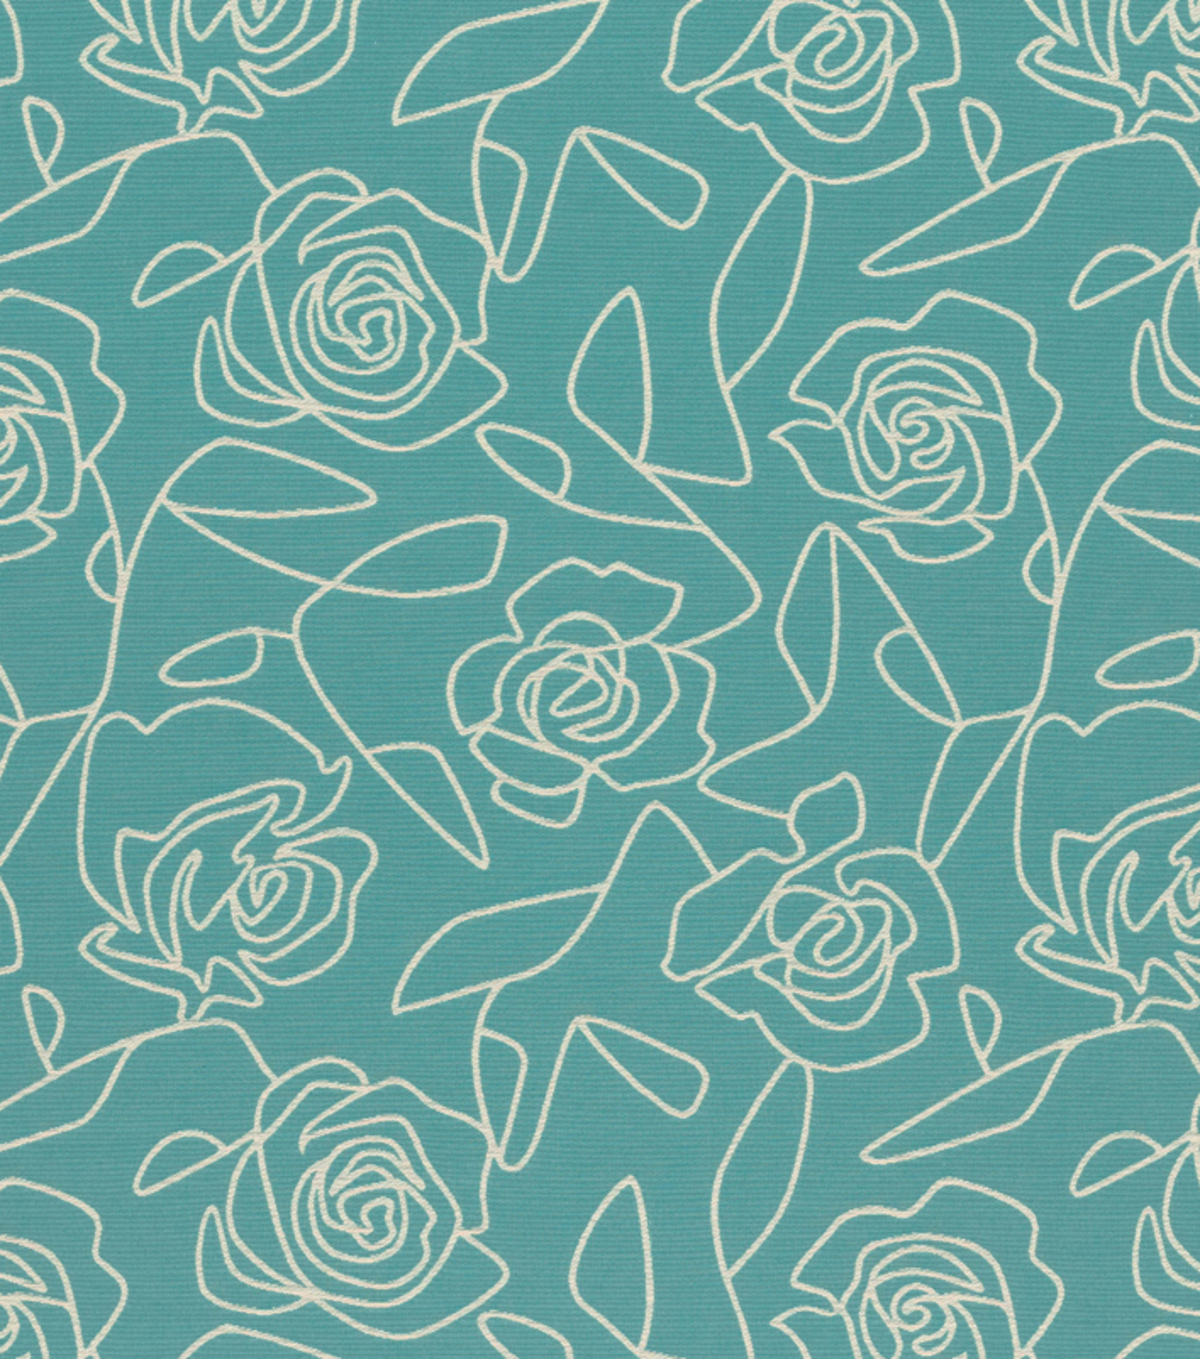 Home Decor 8\u0022x8\u0022 Fabric Swatch-Bed Of Roses Blue